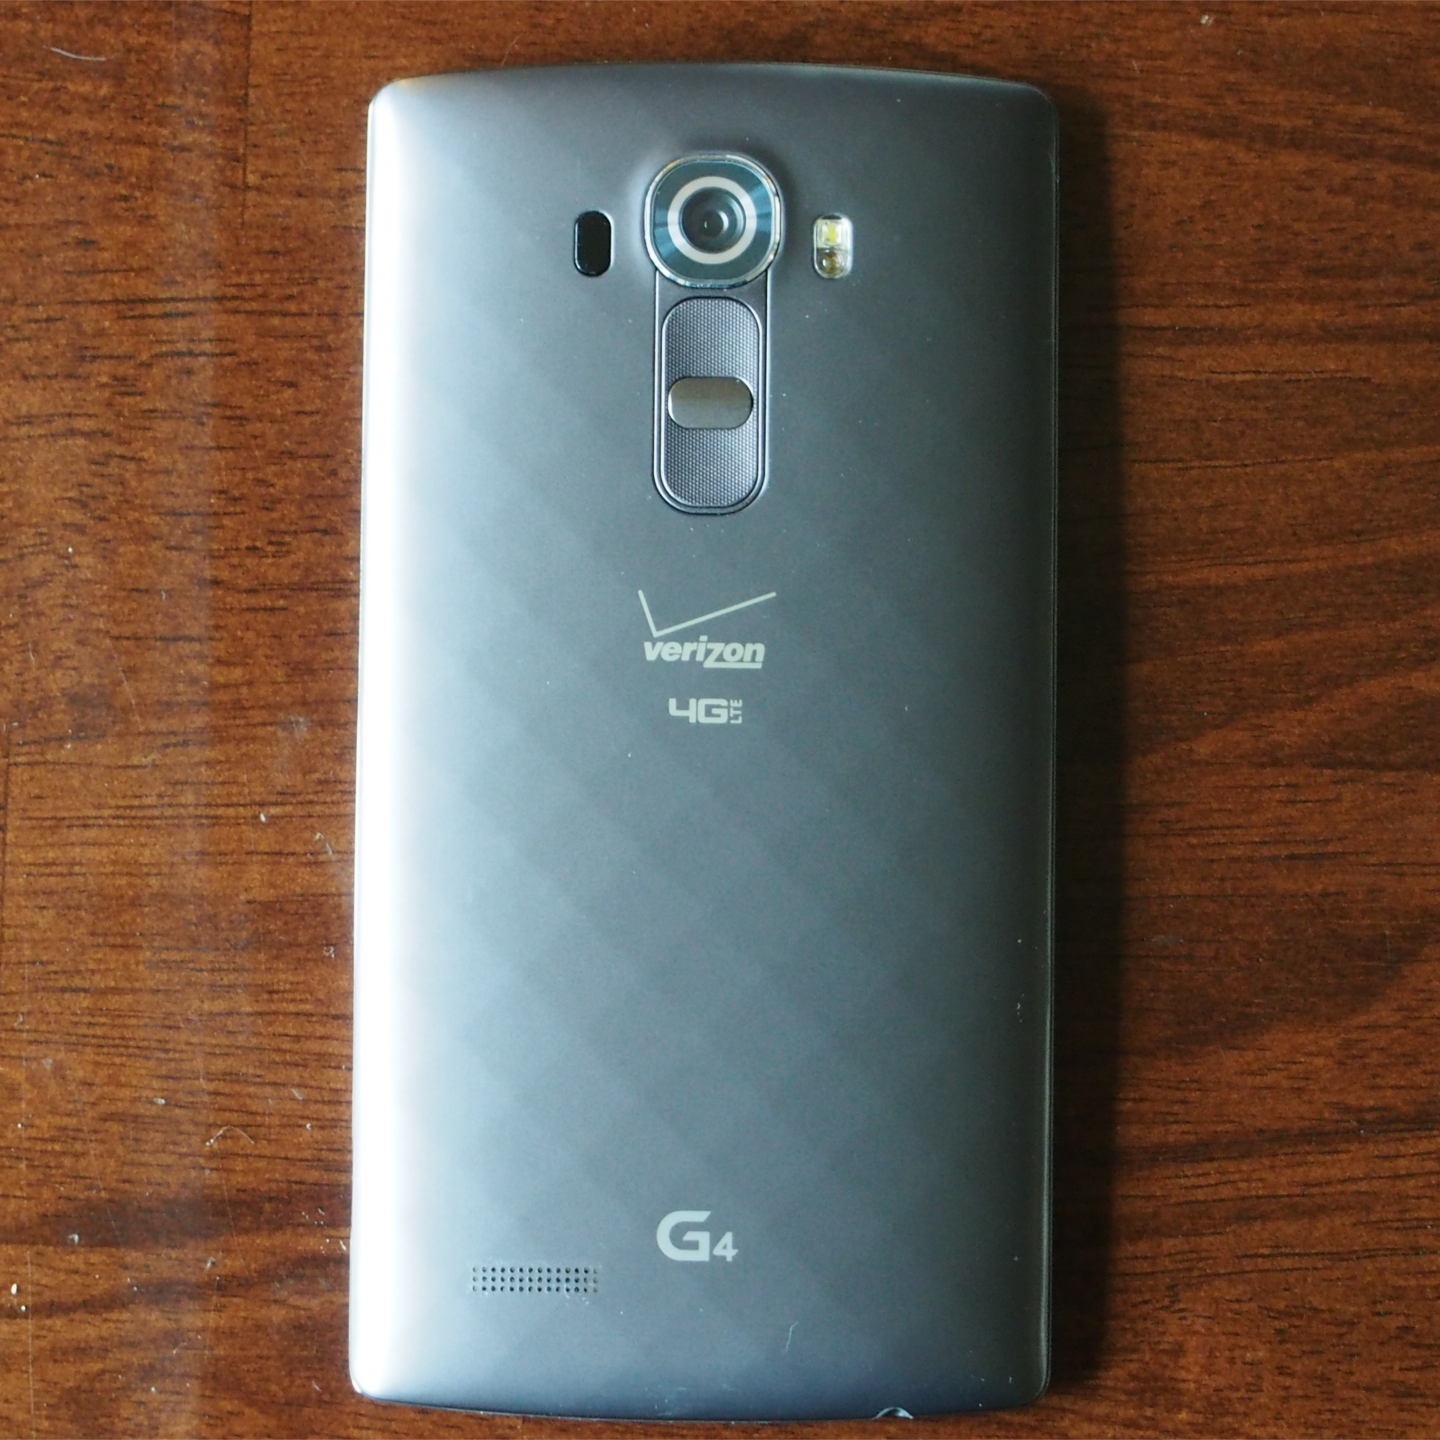 LG G4 mobileFreq review